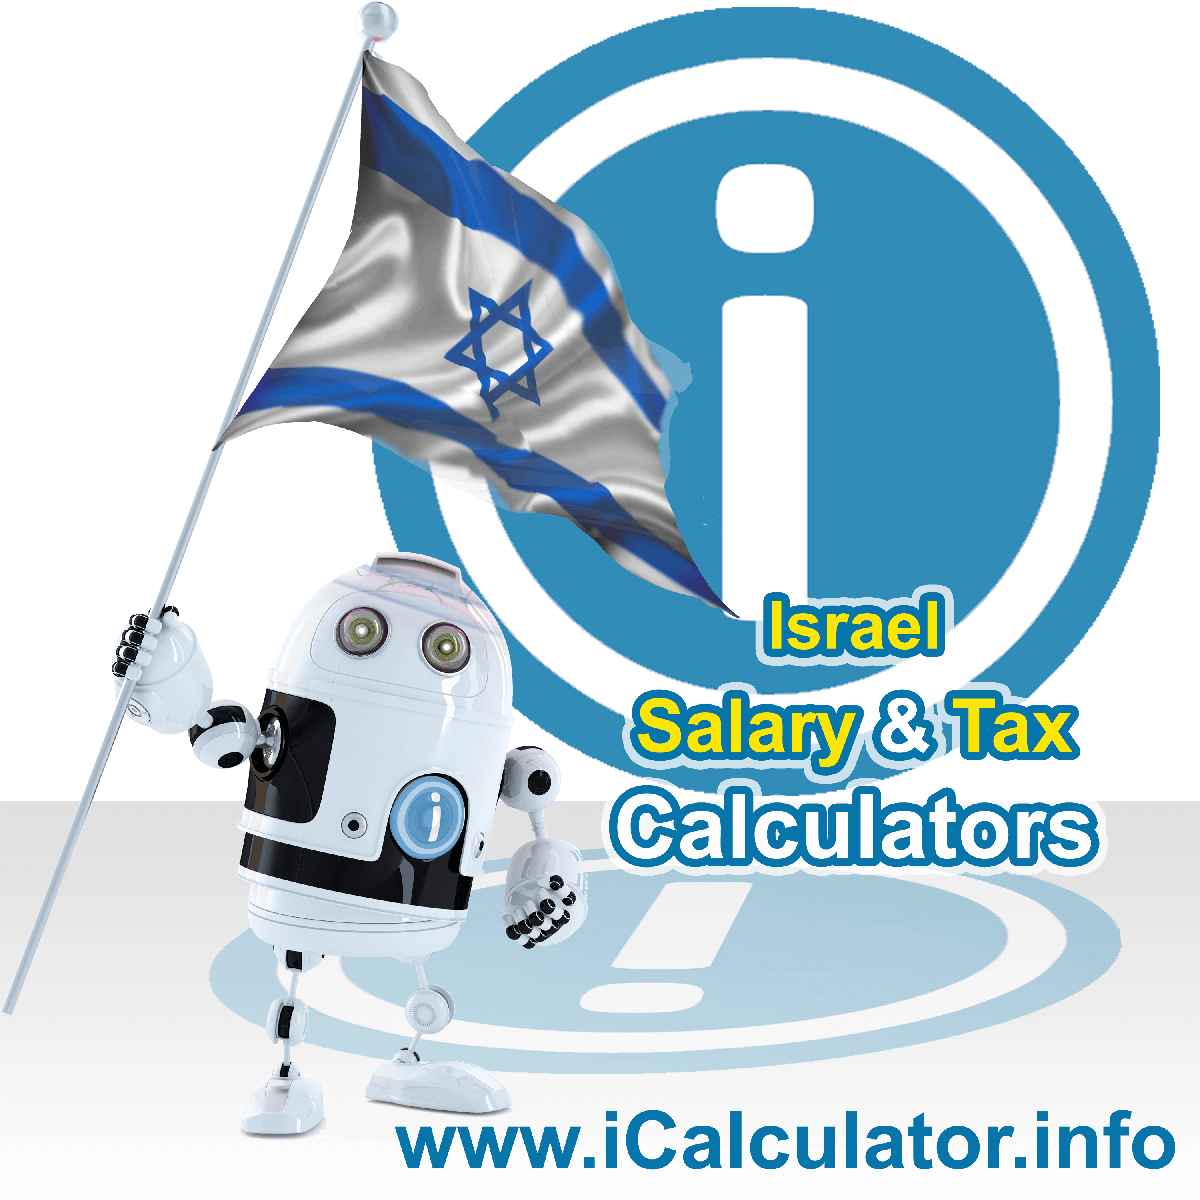 Israel Tax Calculator. This image shows the Israel flag and information relating to the tax formula for the Israel Salary Calculator